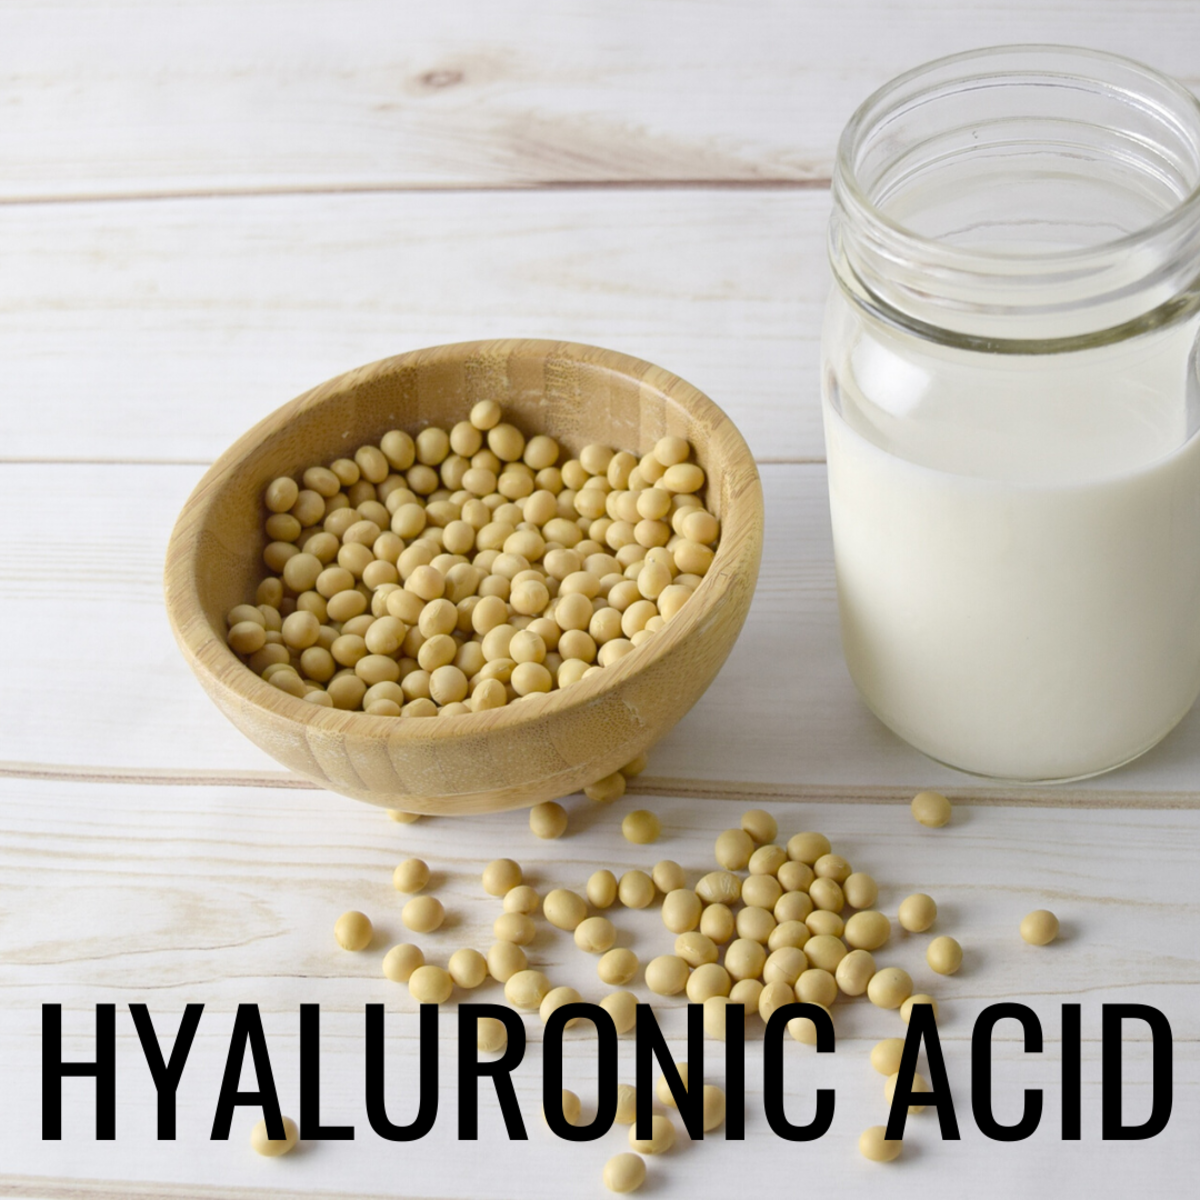 Hyaluronic acid helps to support tissue structure.